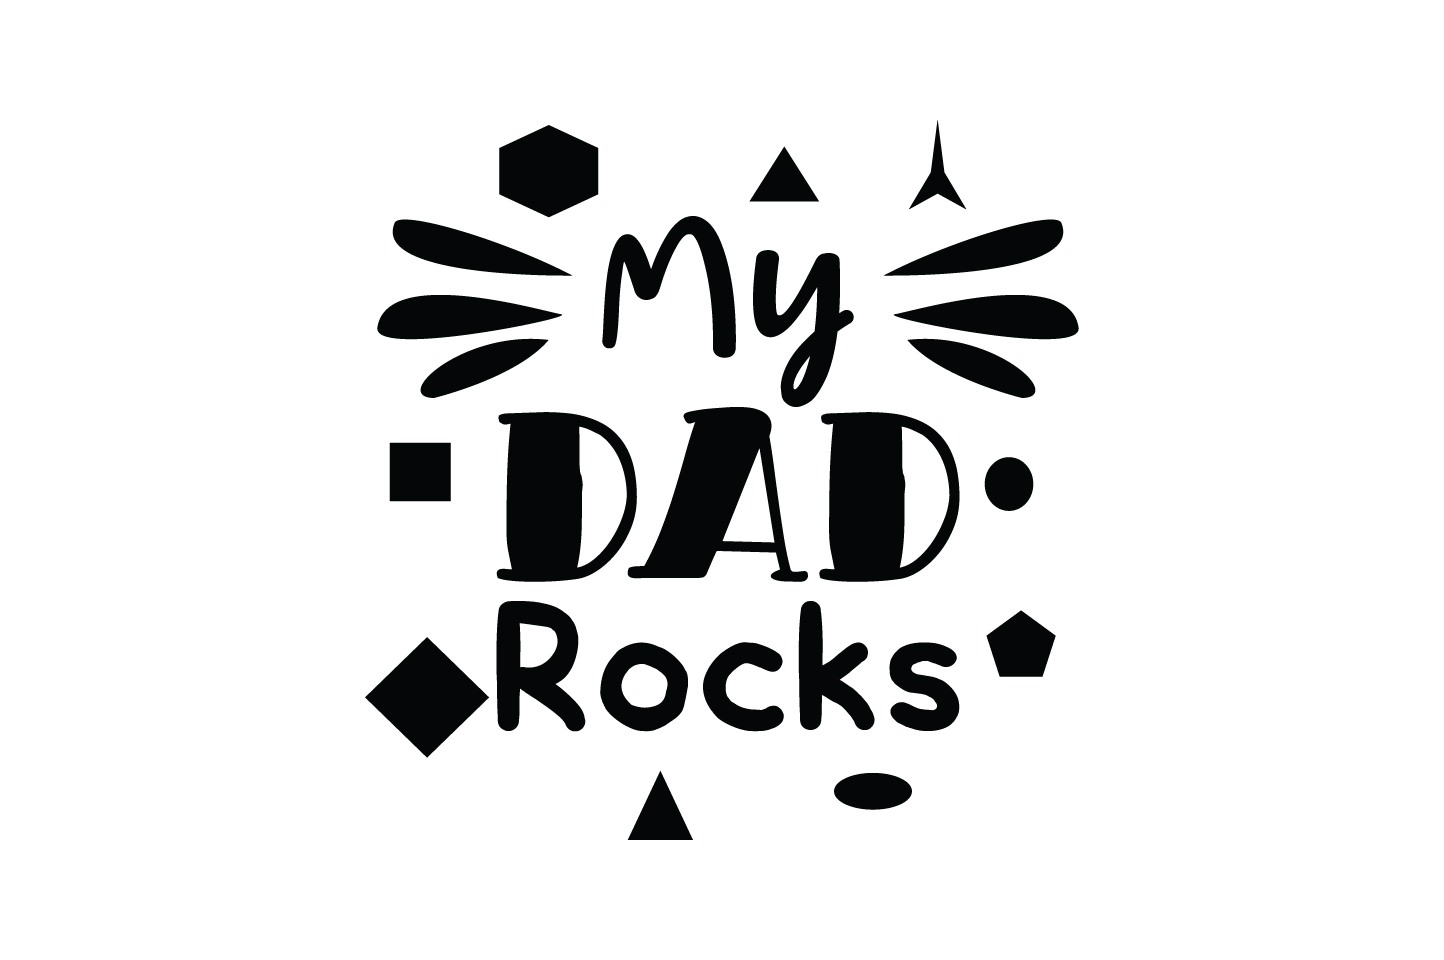 Download Free My Dad Rocks Quote Graphic By Yuhana Purwanti Creative Fabrica for Cricut Explore, Silhouette and other cutting machines.